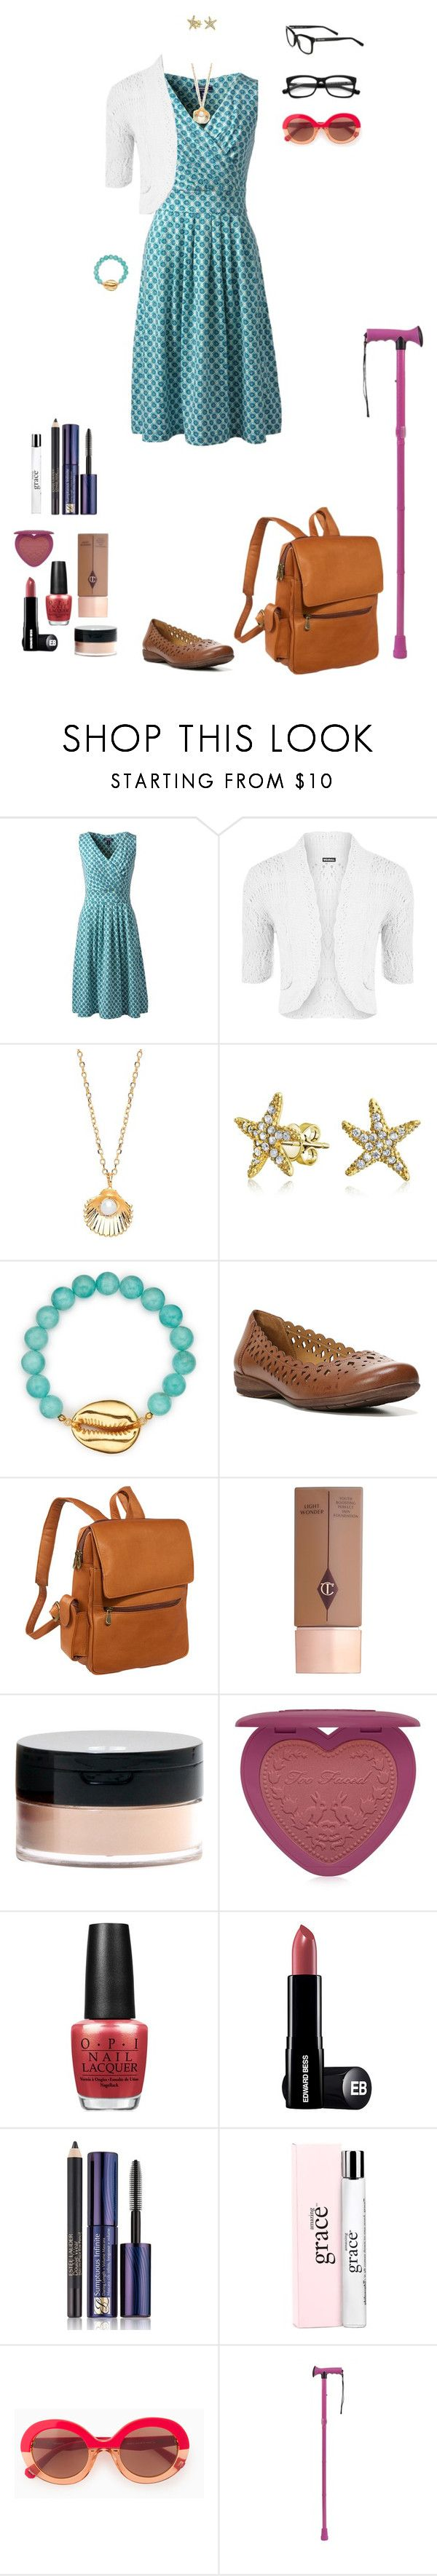 """""""casual Friday, summer (Aoife, AU)"""" by shulabond on Polyvore featuring Lands' End, WearAll, Estella Bartlett, Bling Jewelry, Pembe Club, Naturalizer, Le Donne, Charlotte Tilbury, Too Faced Cosmetics and OPI"""